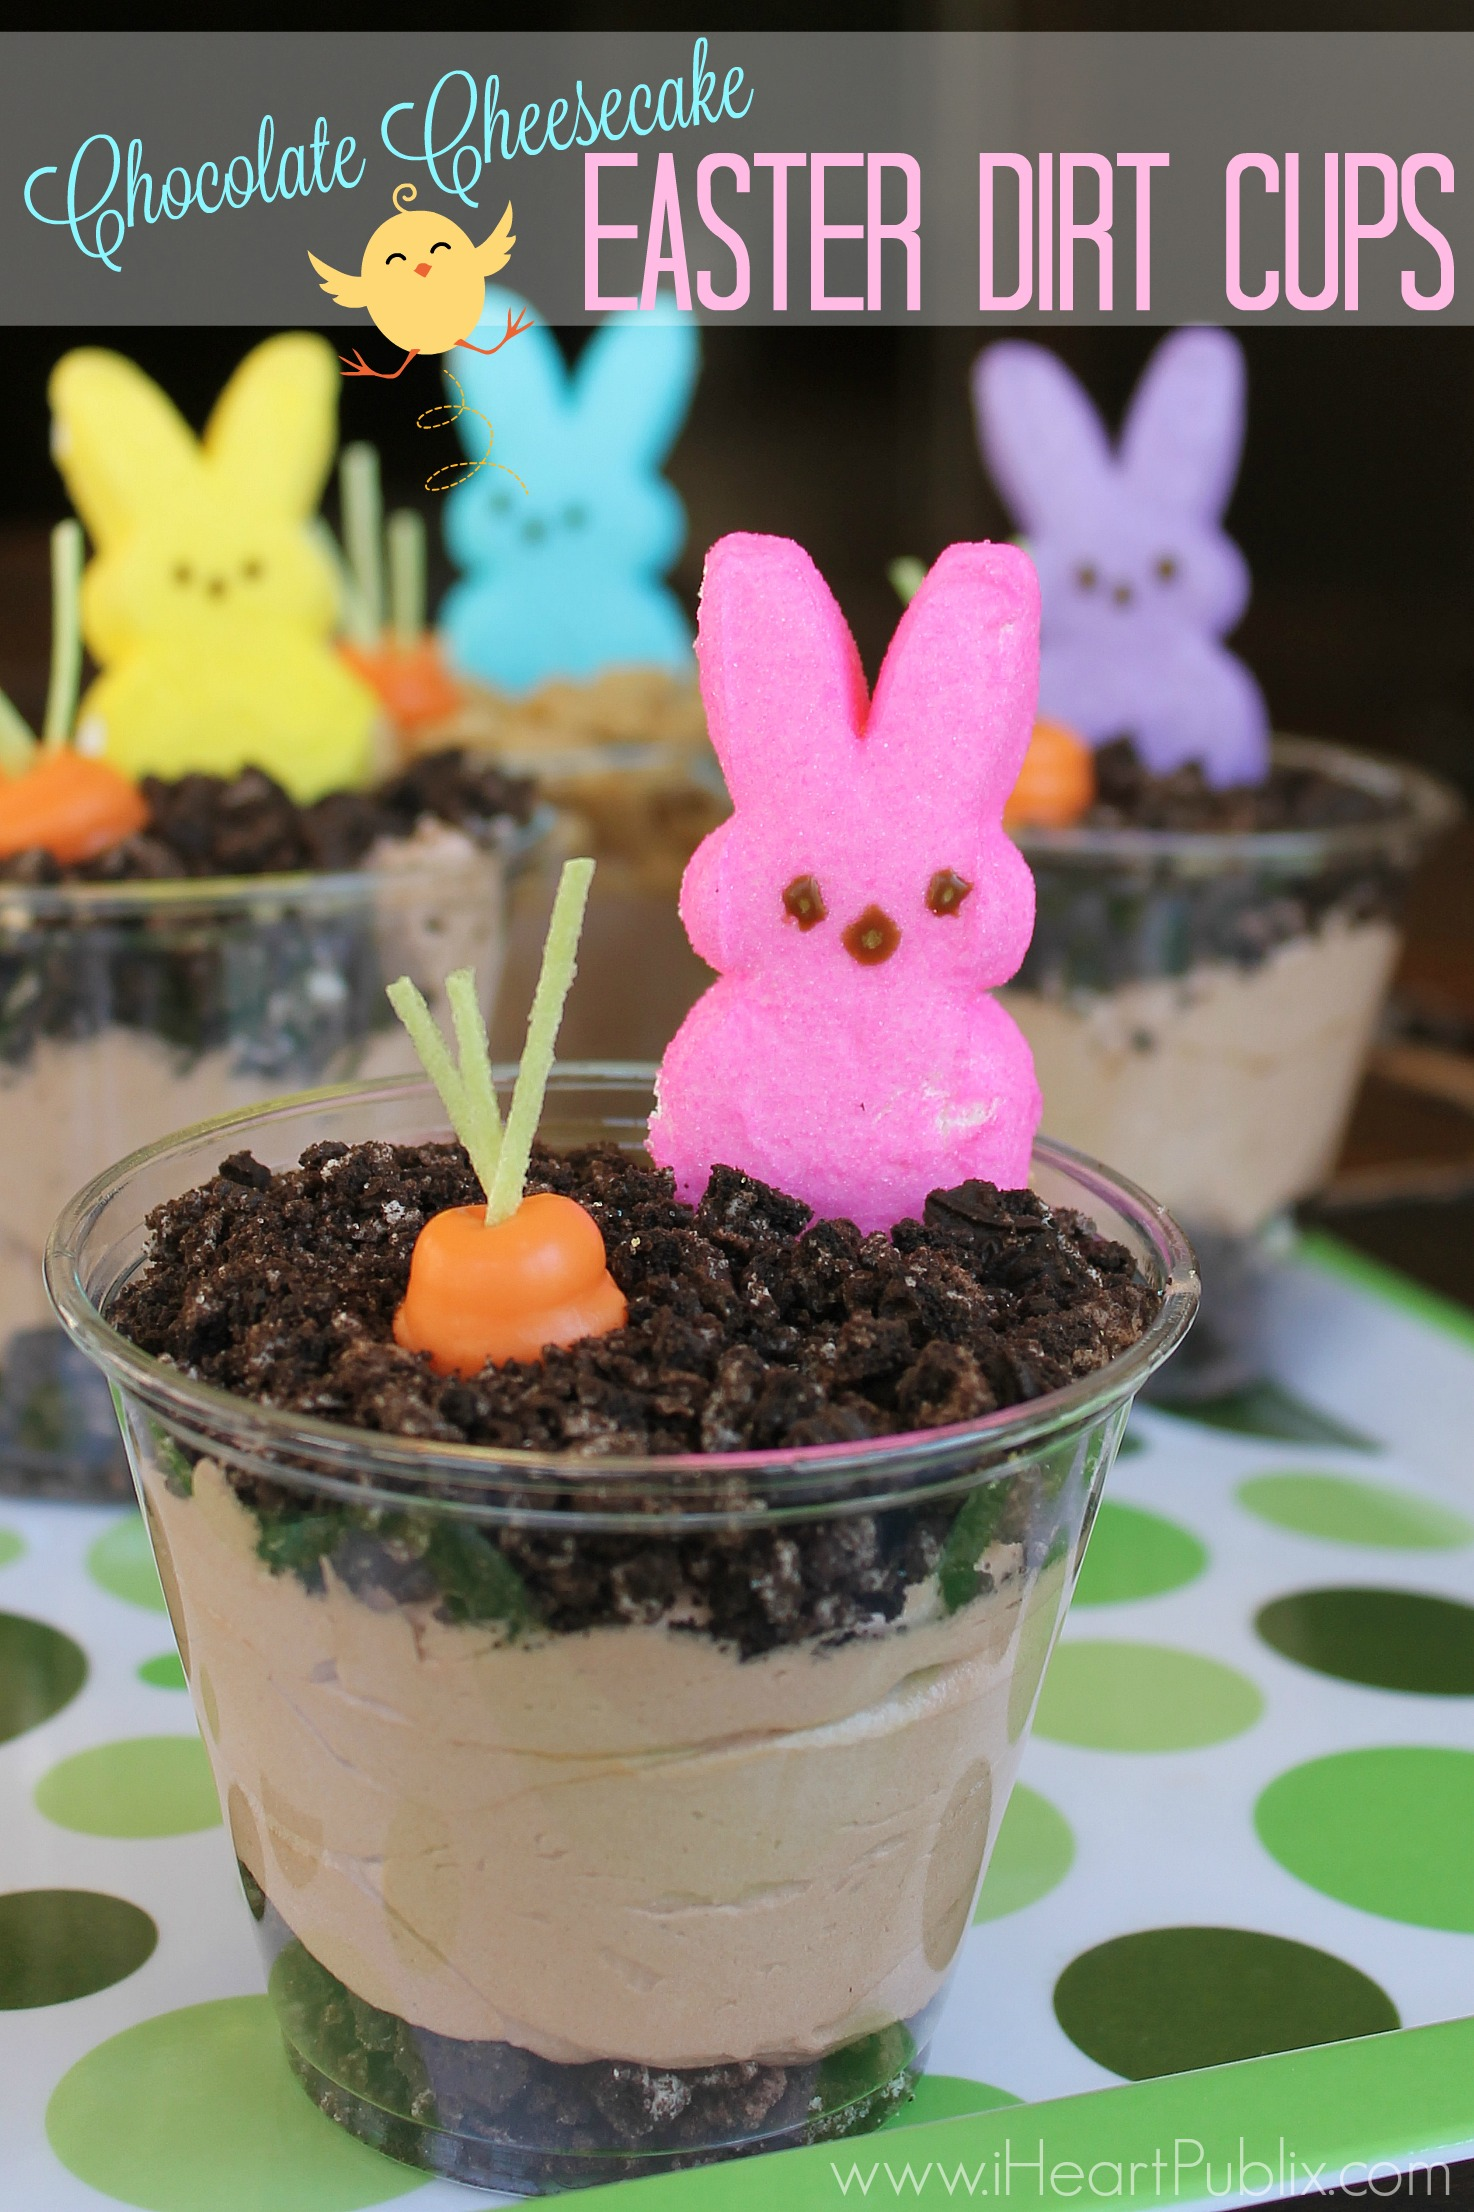 Chocolate Cheesecake Easter Dirt Cups